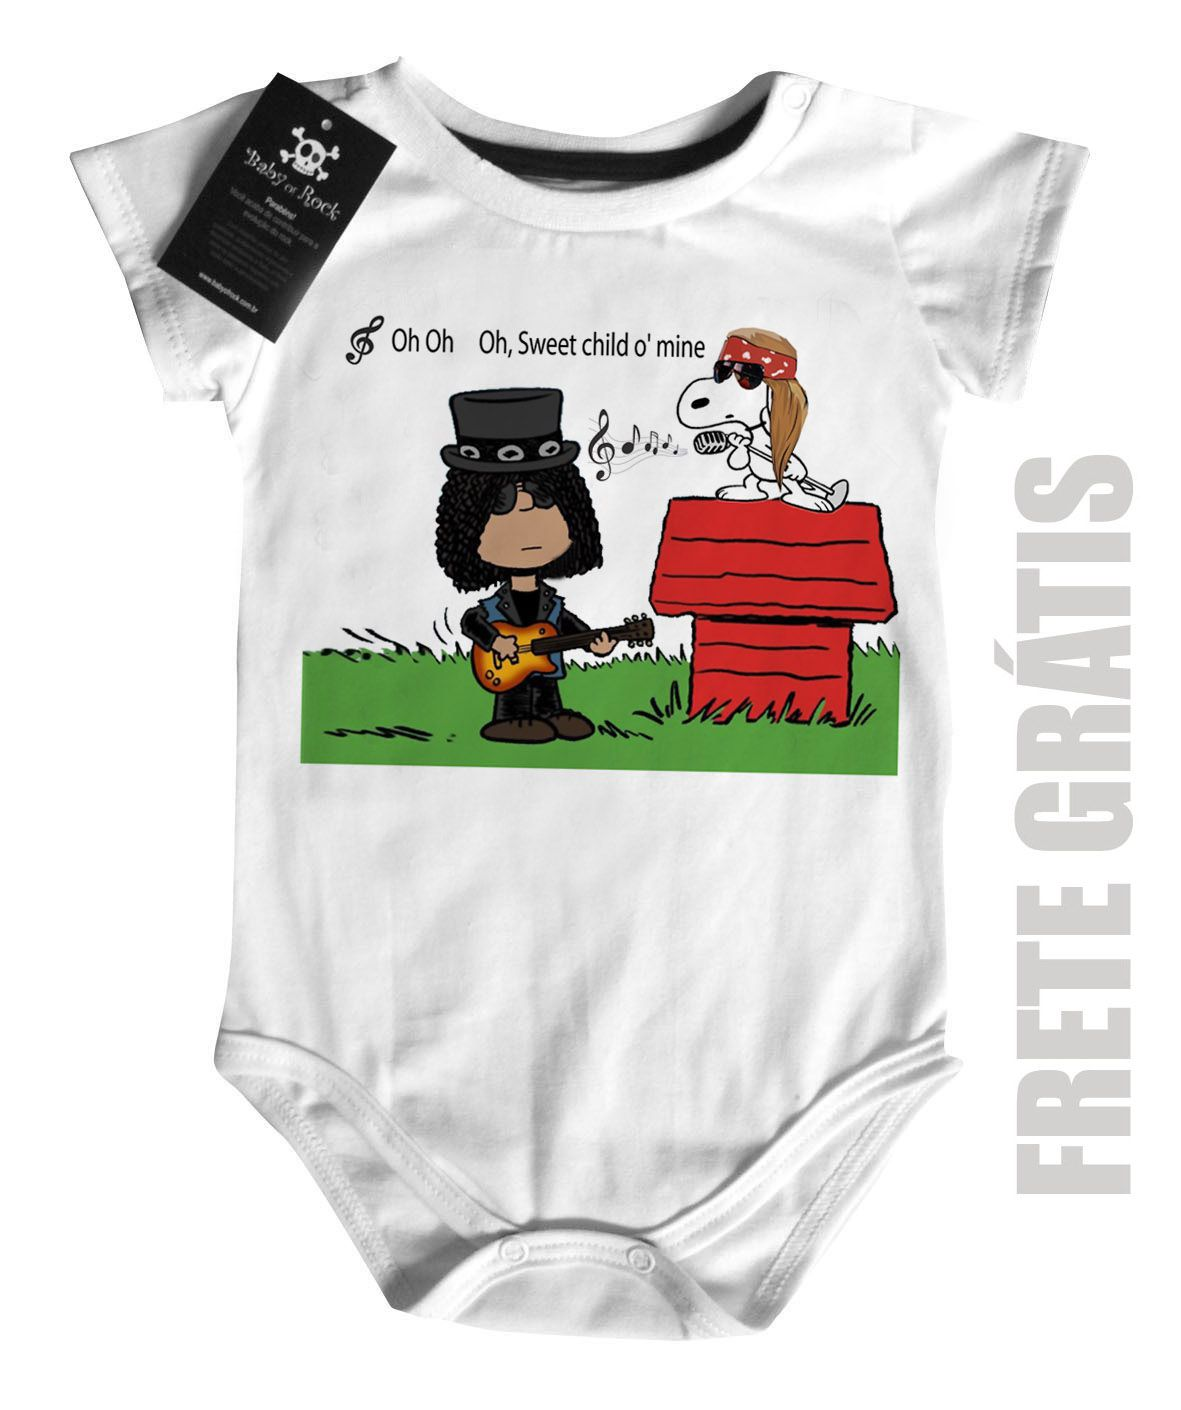 Body Bebê Guns N Roses Snoopy - White  - Baby Monster S/A